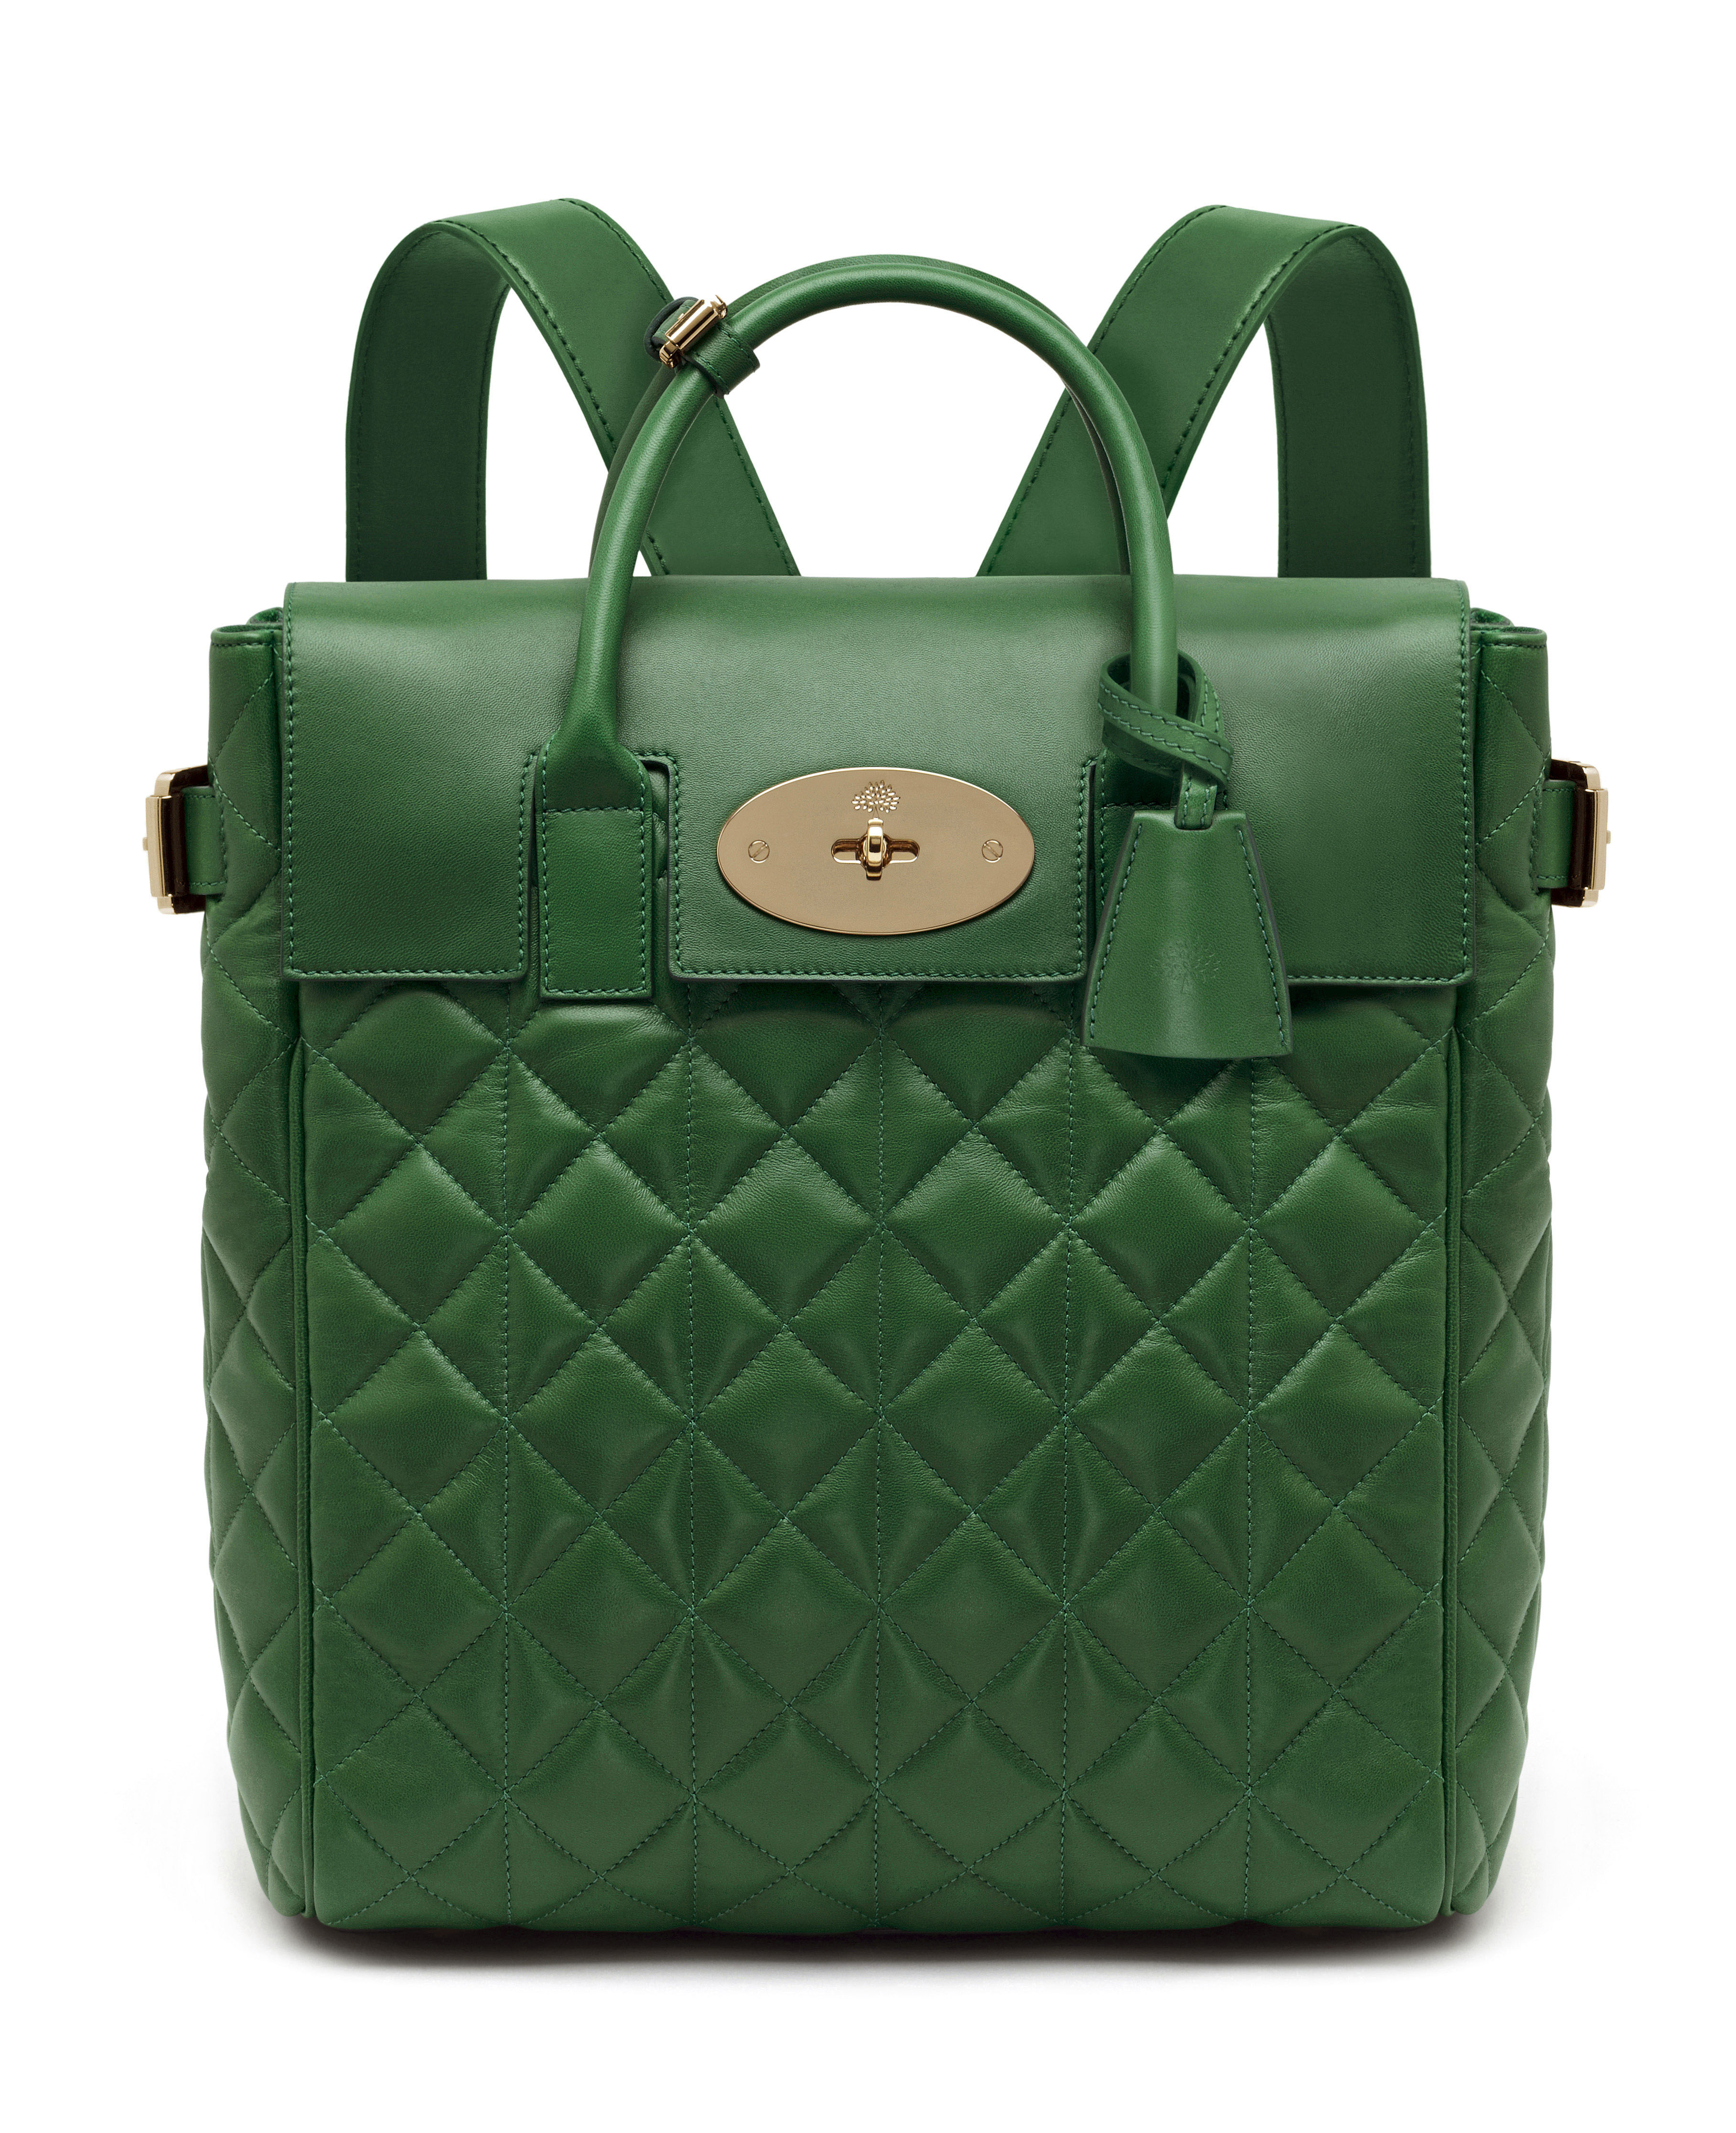 Large Cara Delevingne Bag in Delevingne Green Quilted Nappa